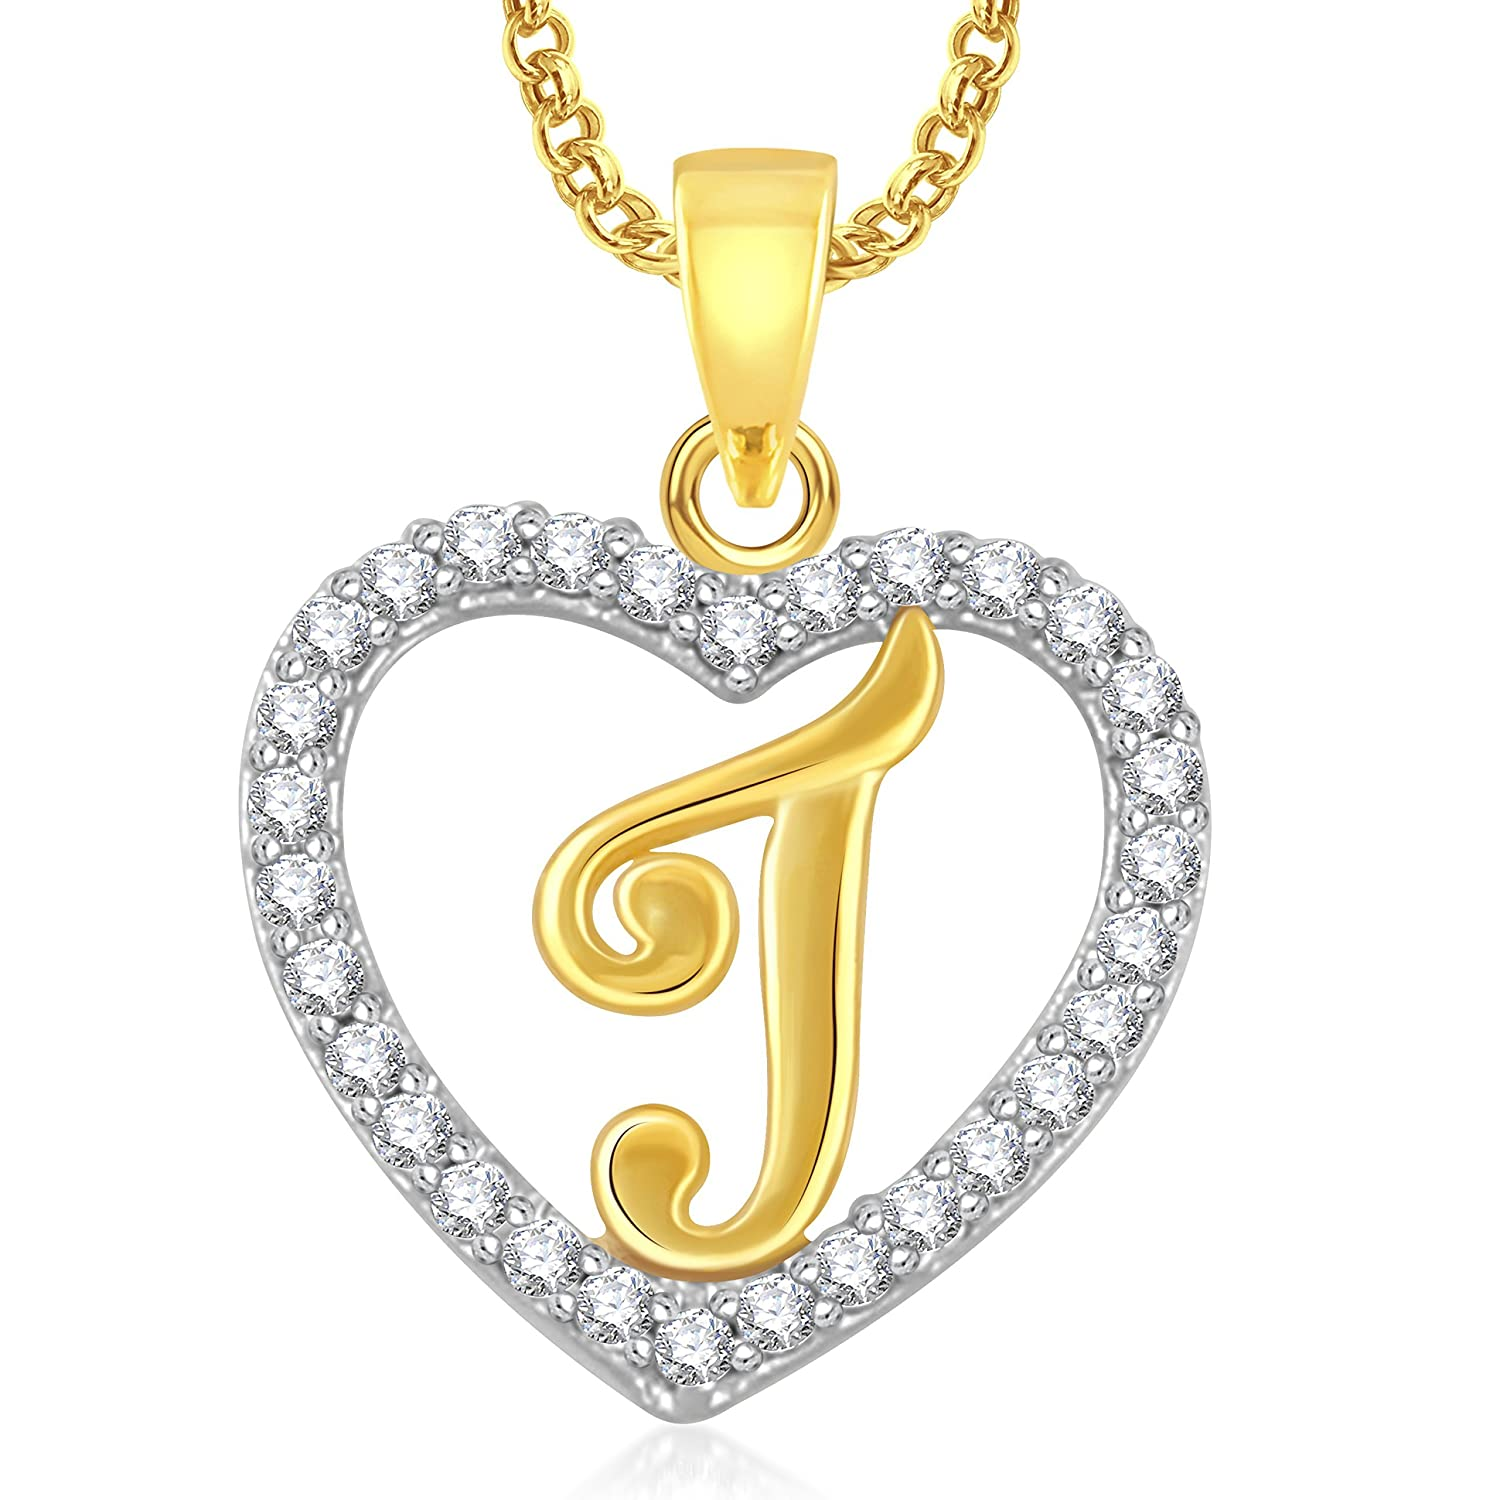 Buy Meenaz J Letter Heart With Chain Gold Plated In American Diamond Pendant Locket Alphabet For Women And Men Cz Ps403 Online At Low Prices India